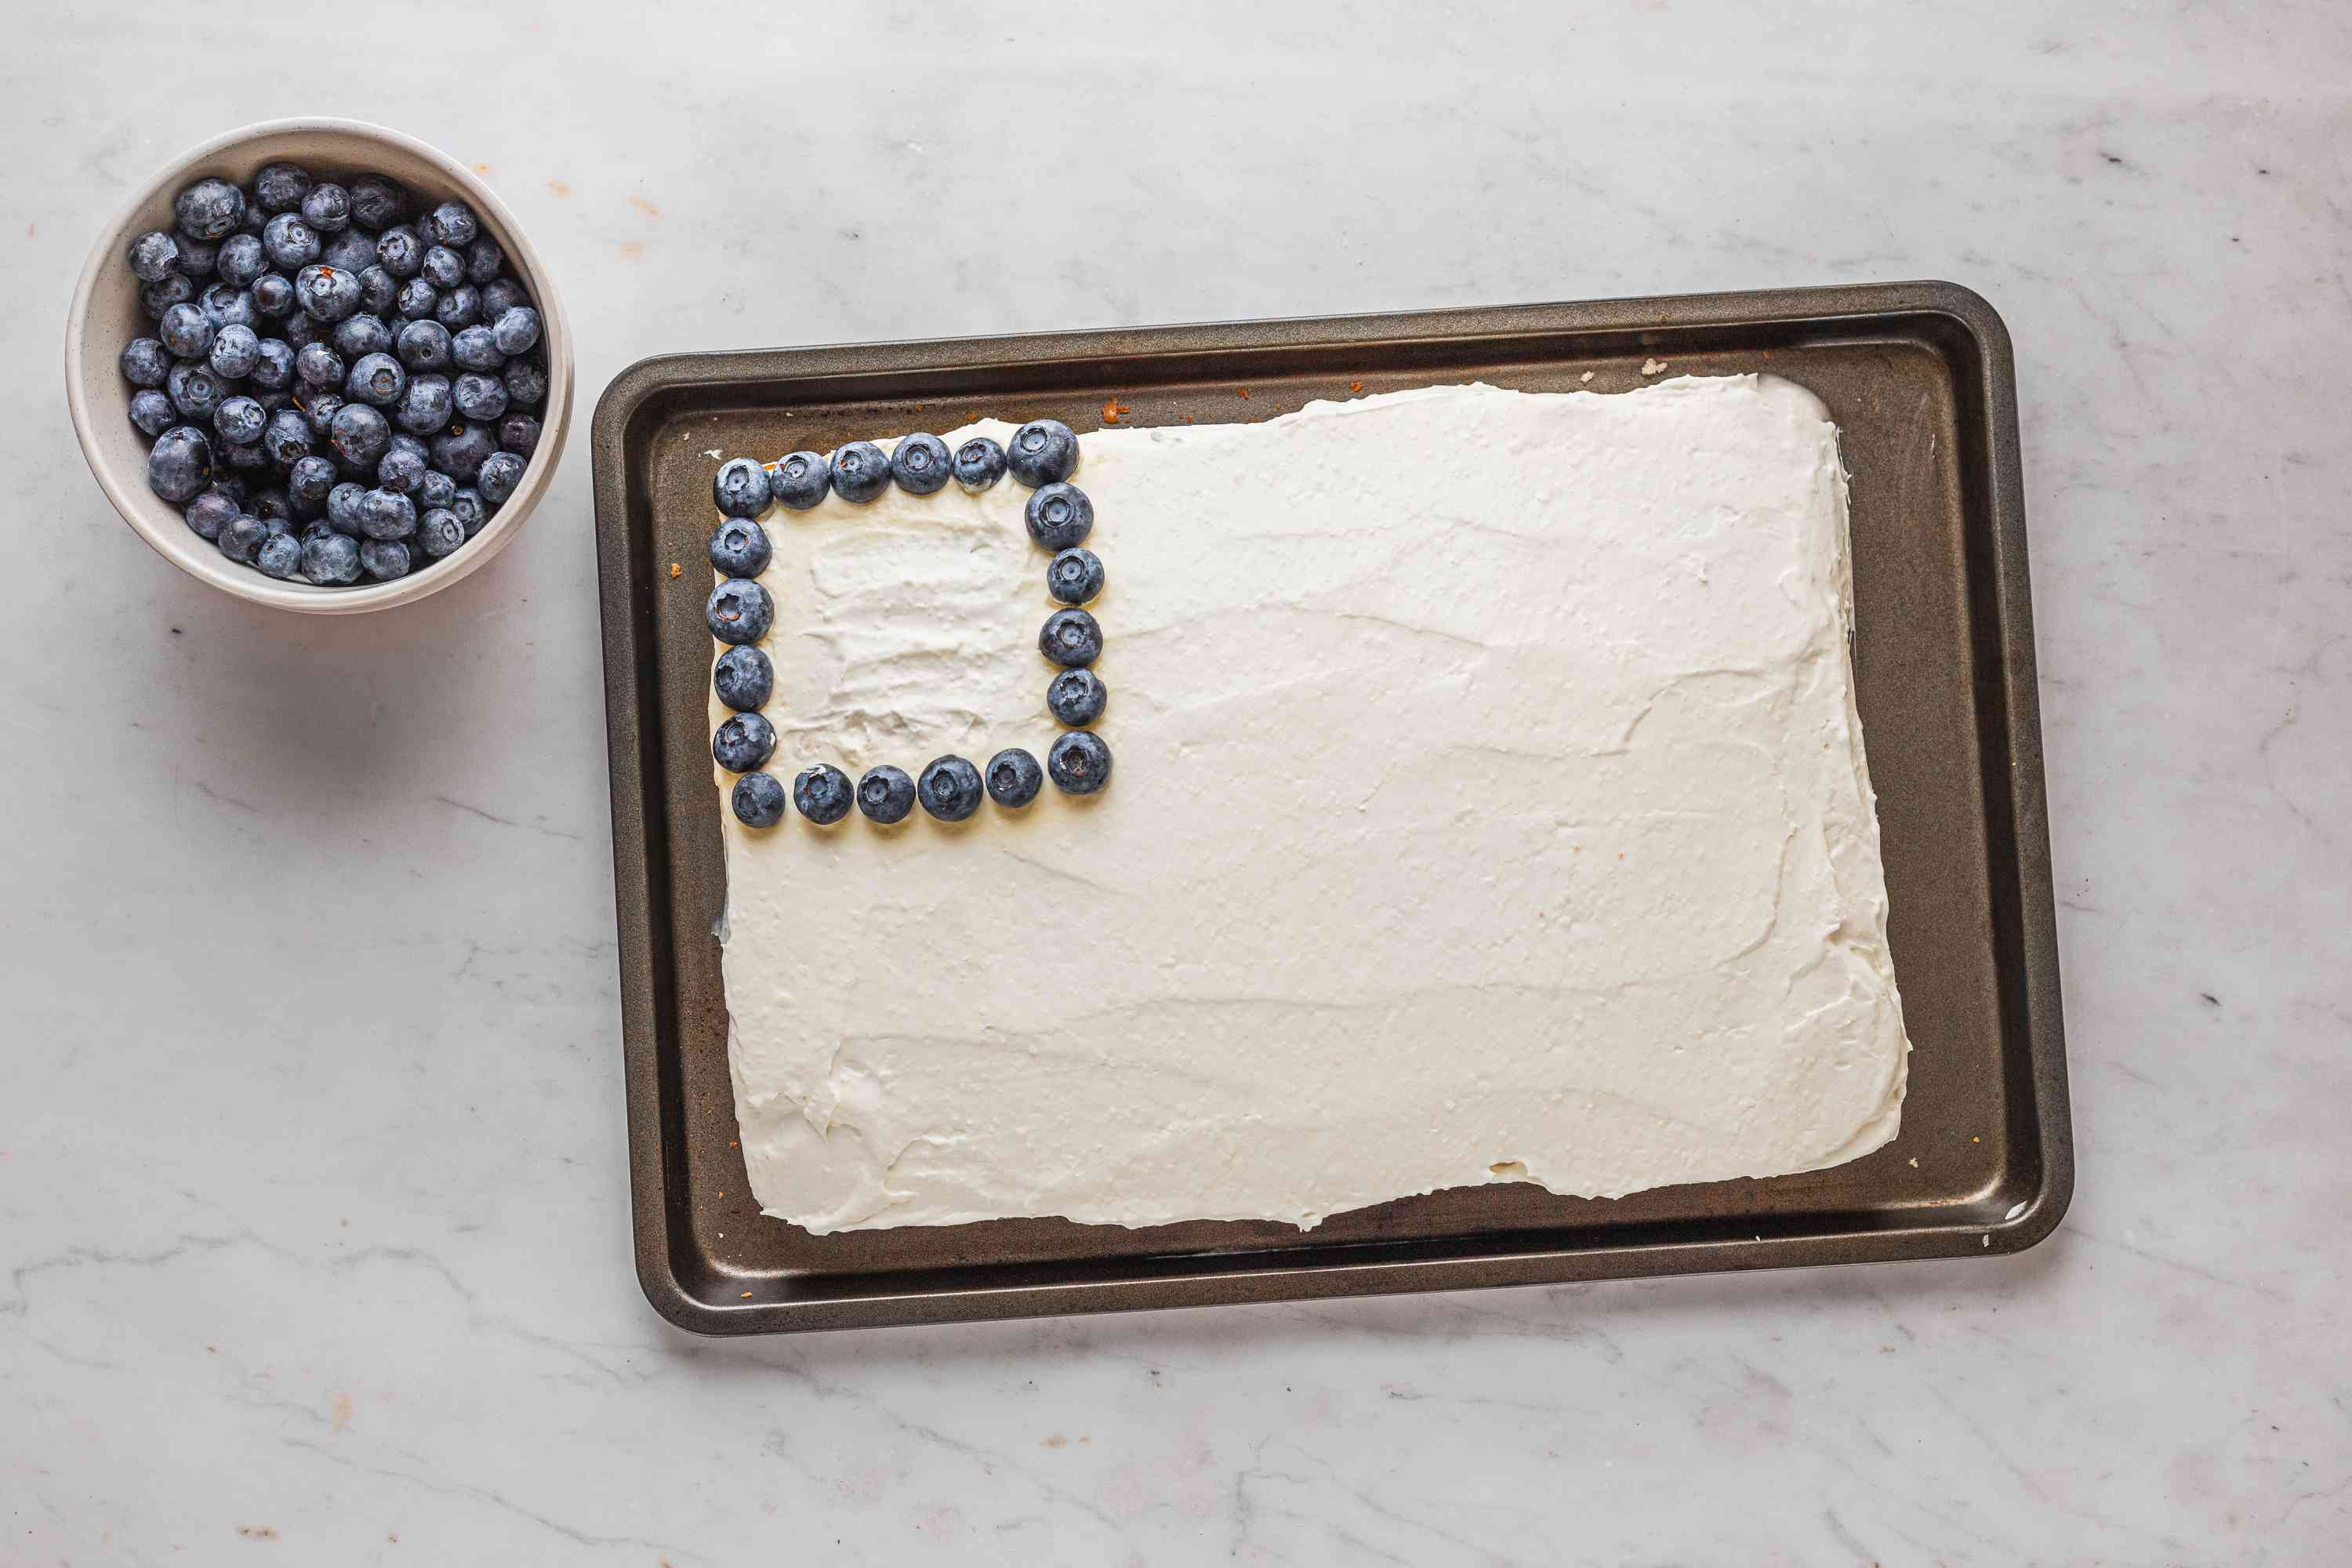 Blueberries on the cake